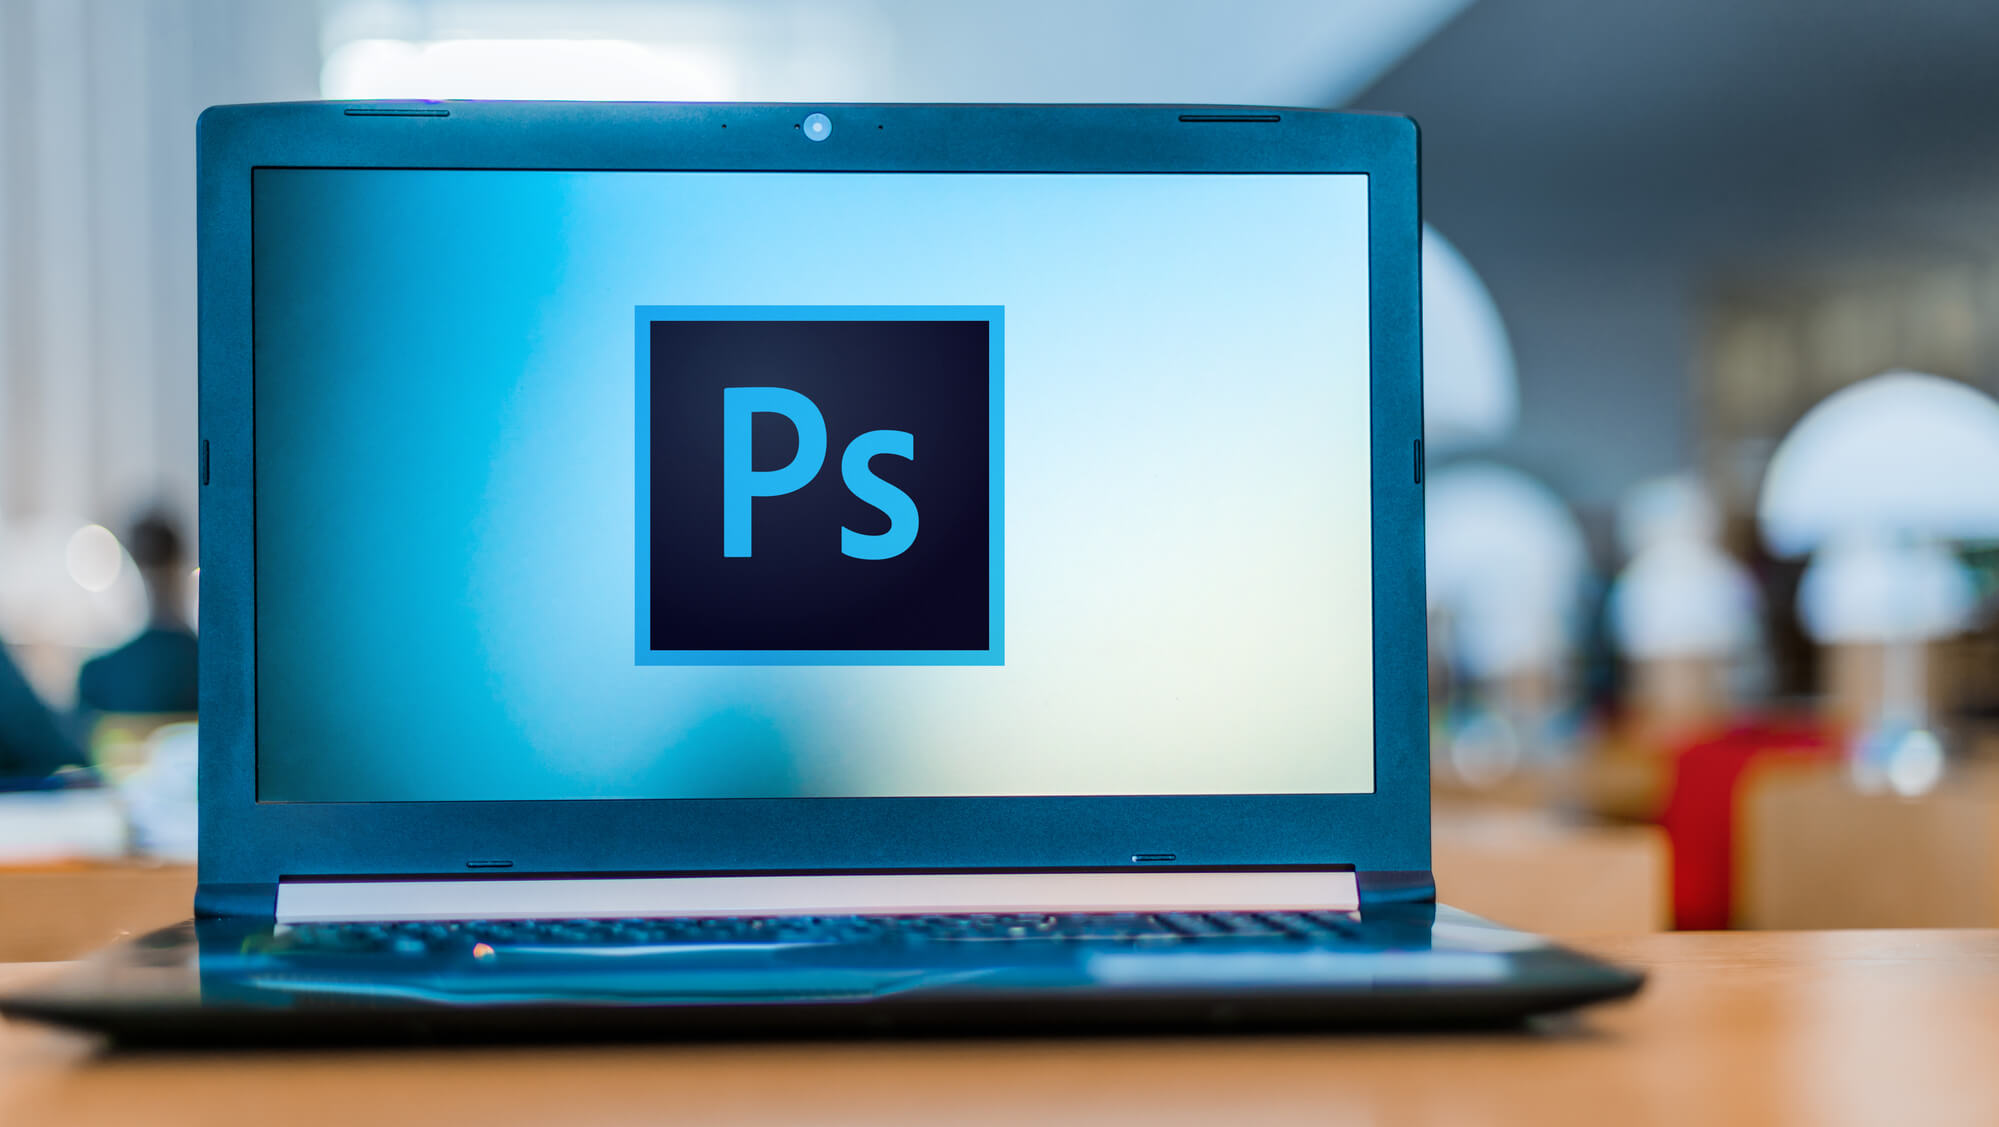 How can photoshop help create multimedia content?